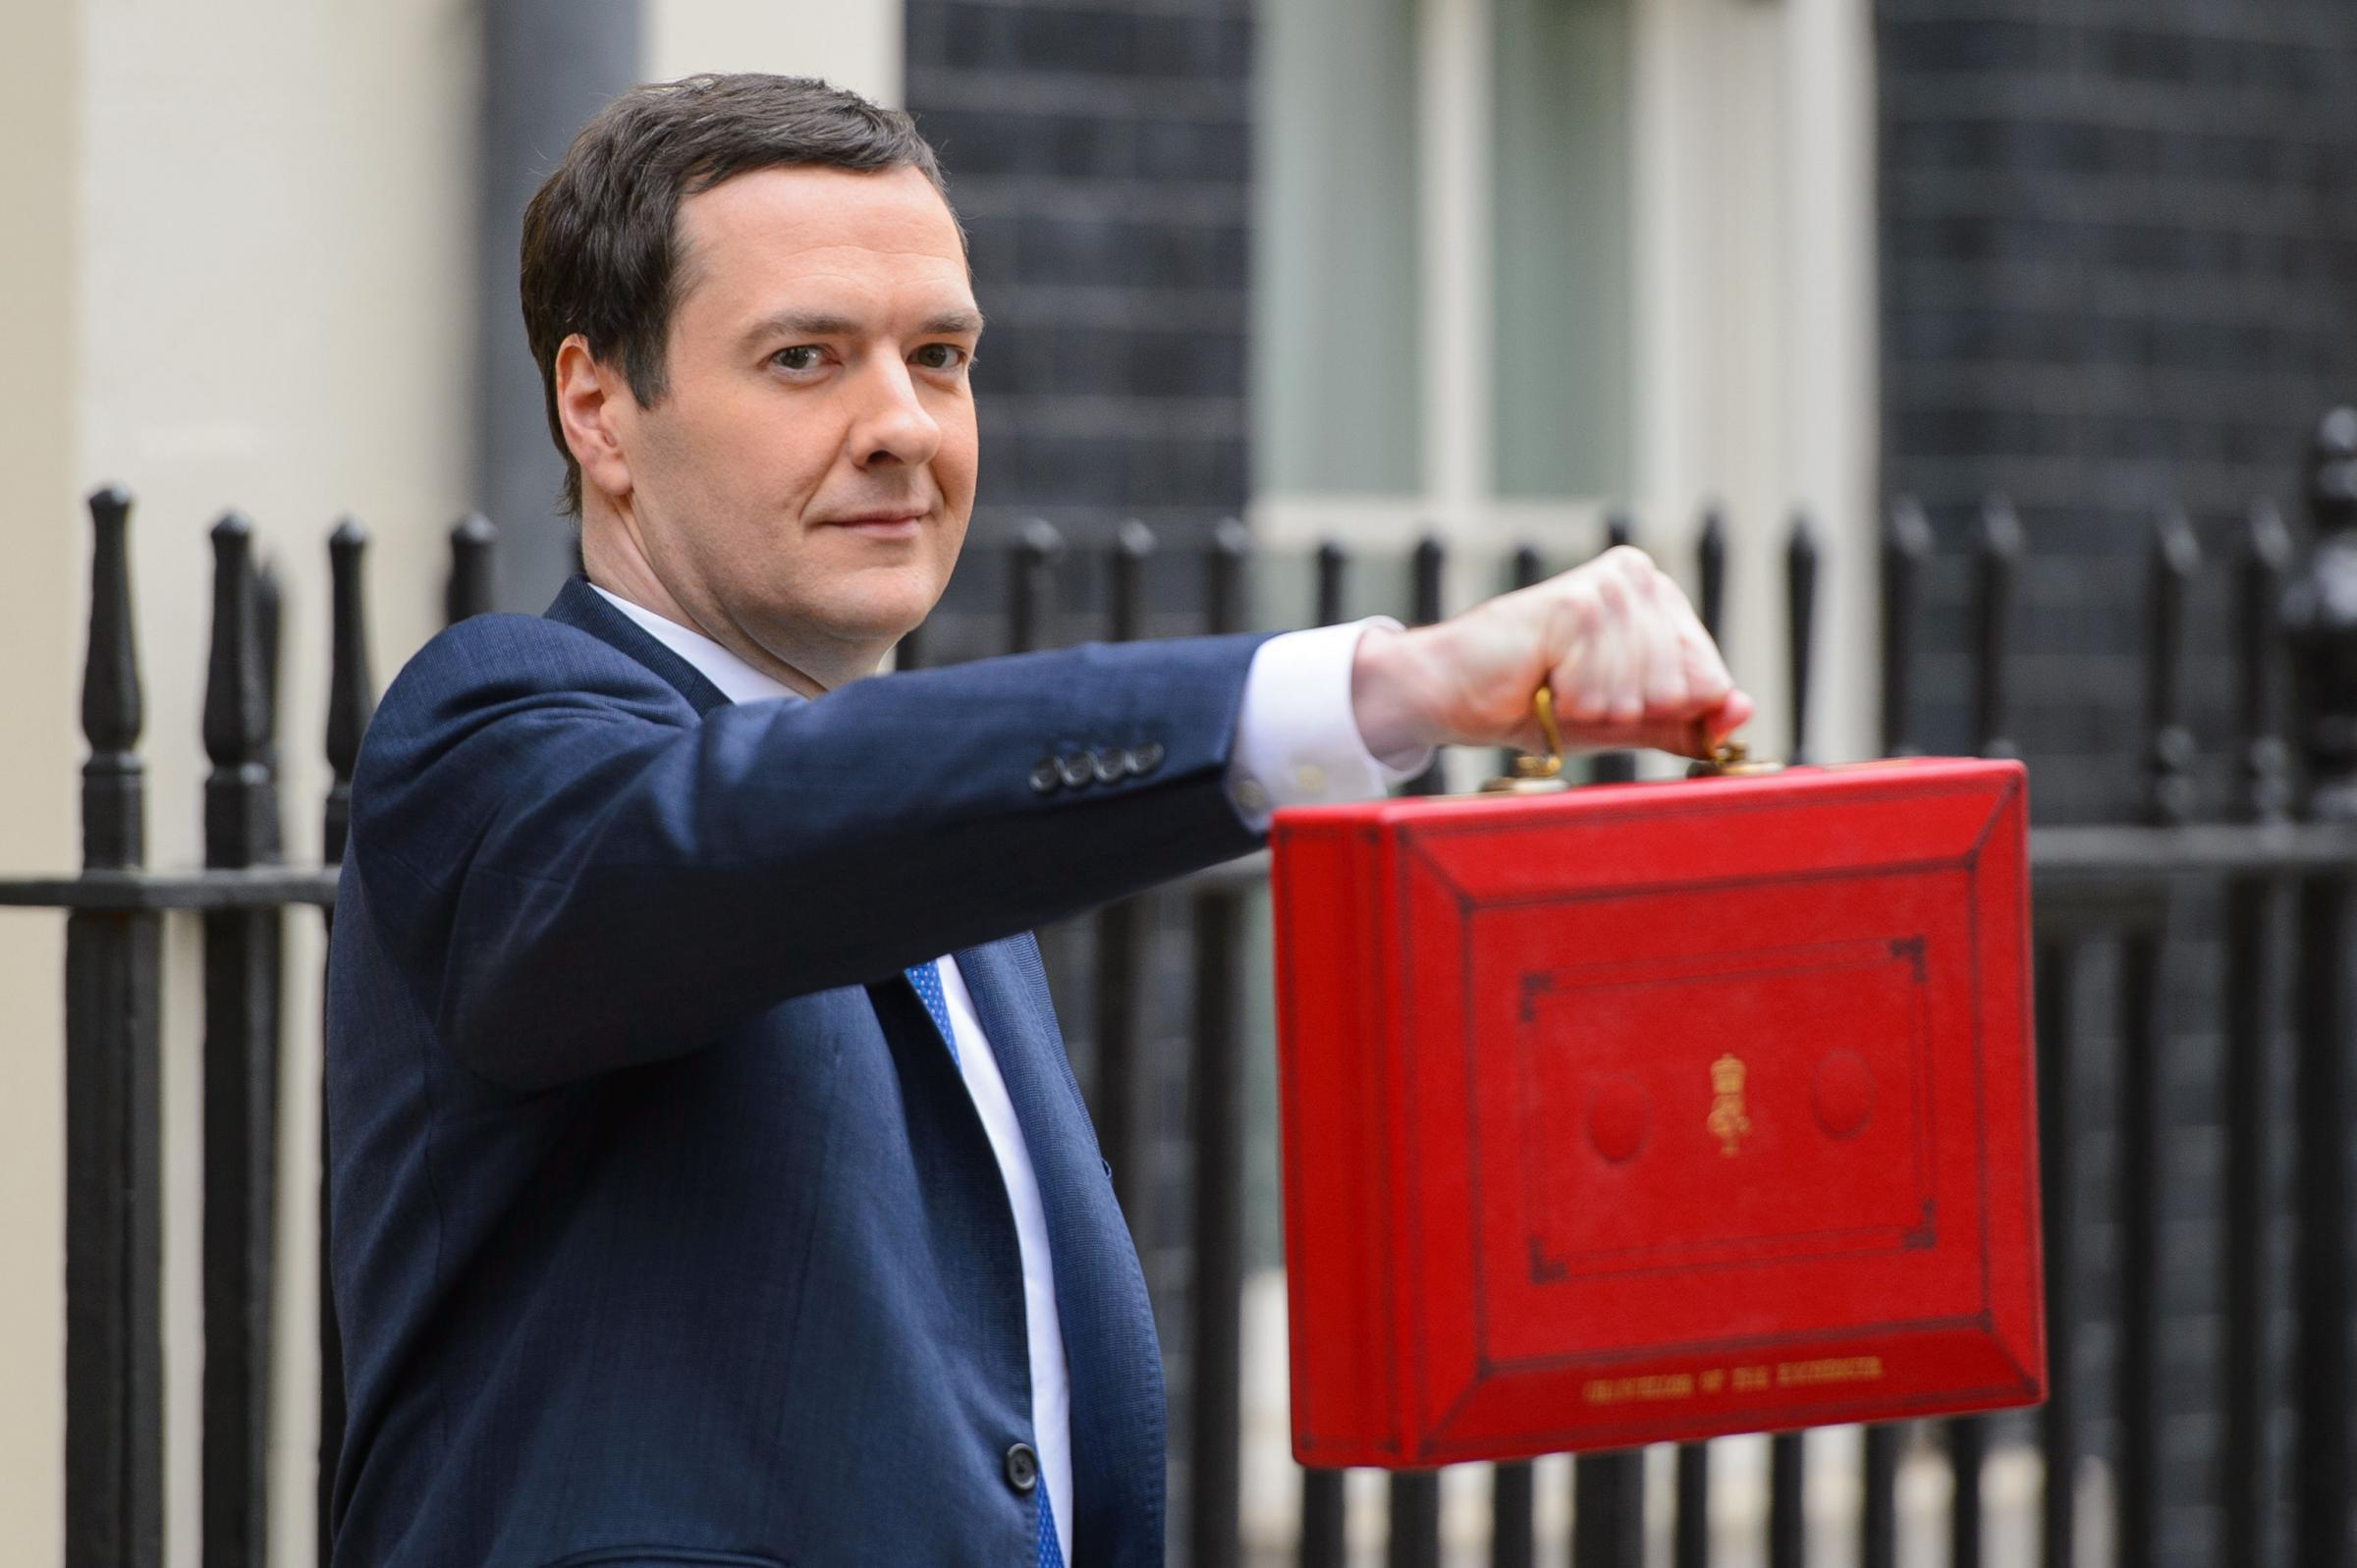 Budget 2014: A mixed bag of responses